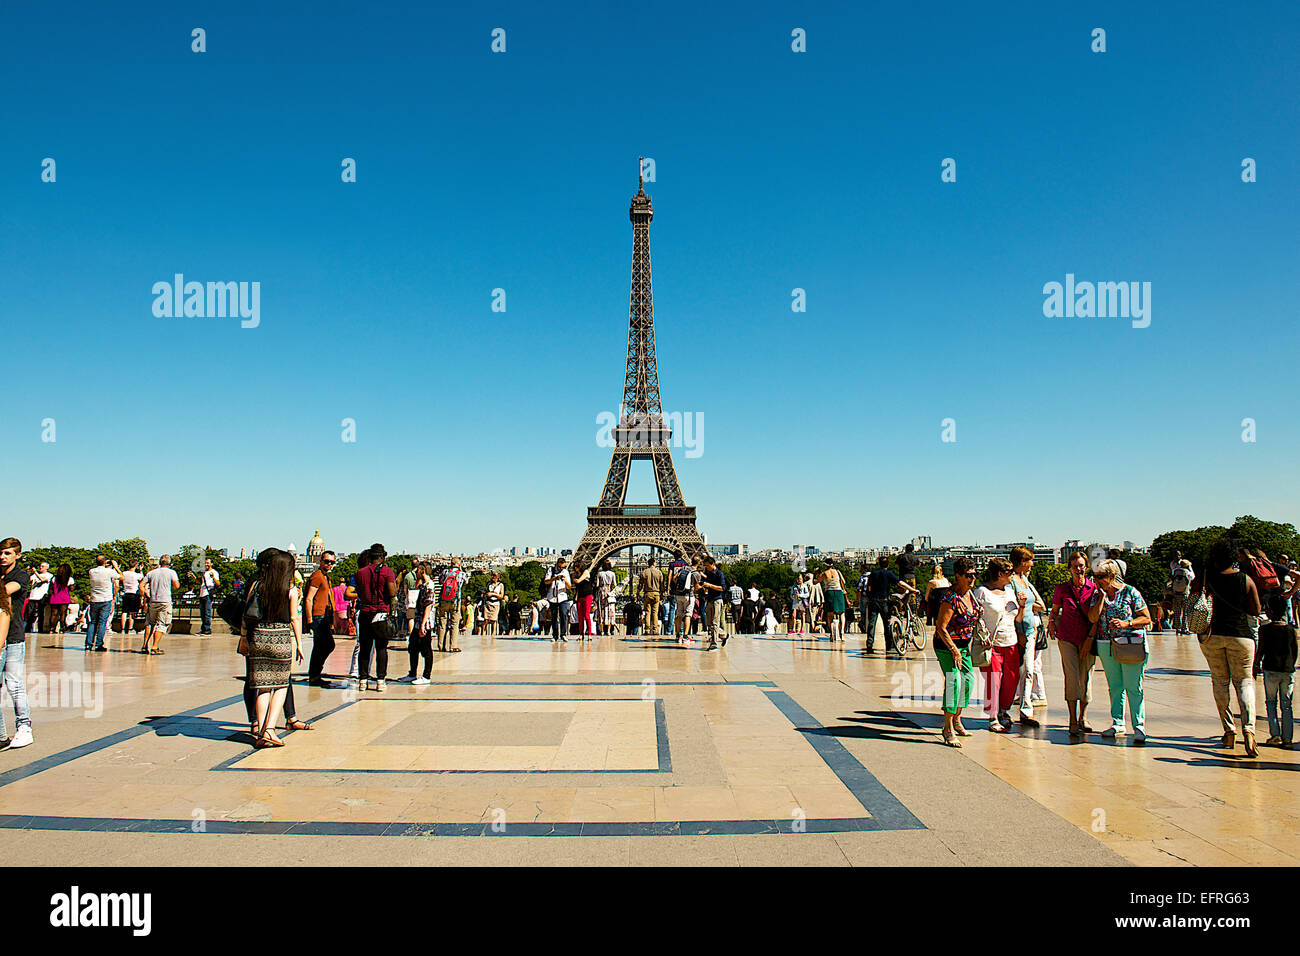 Eiffel Tower and Tourists, Paris, France - Stock Image